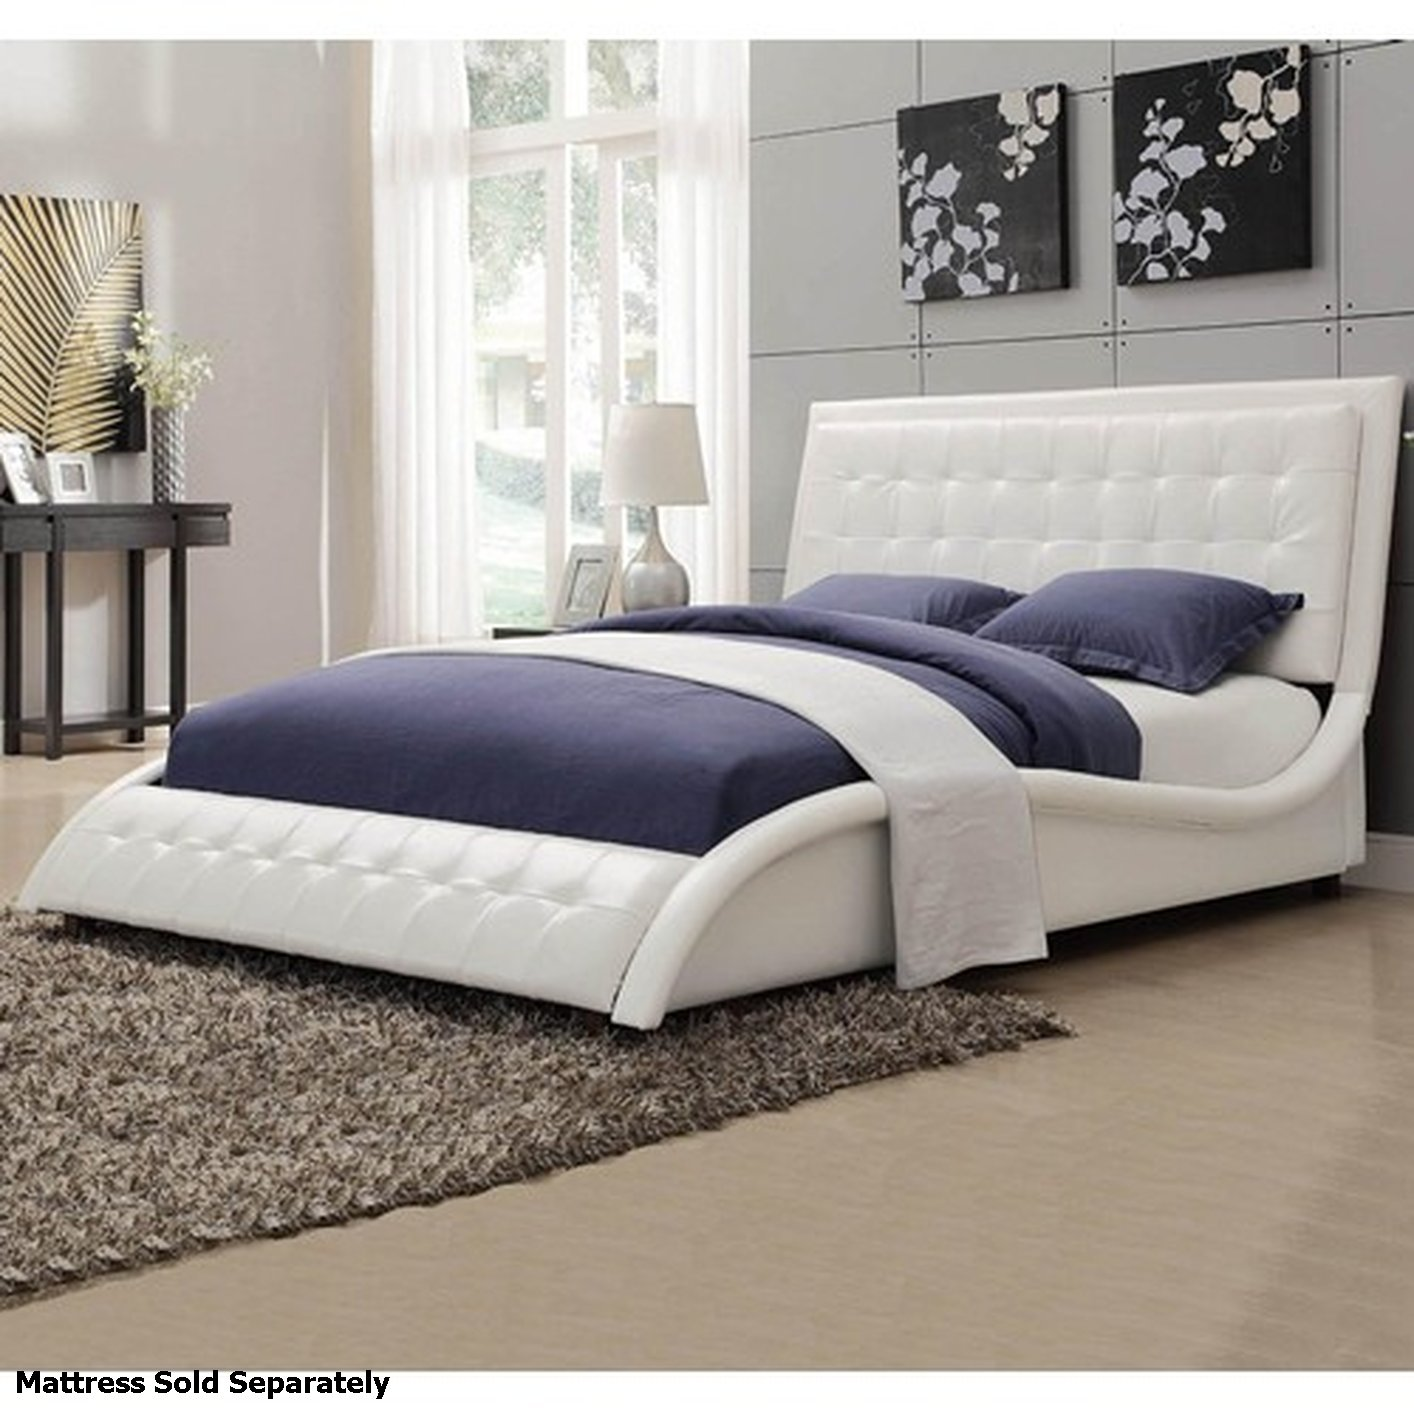 Queen size bed home Size of a queen size mattress